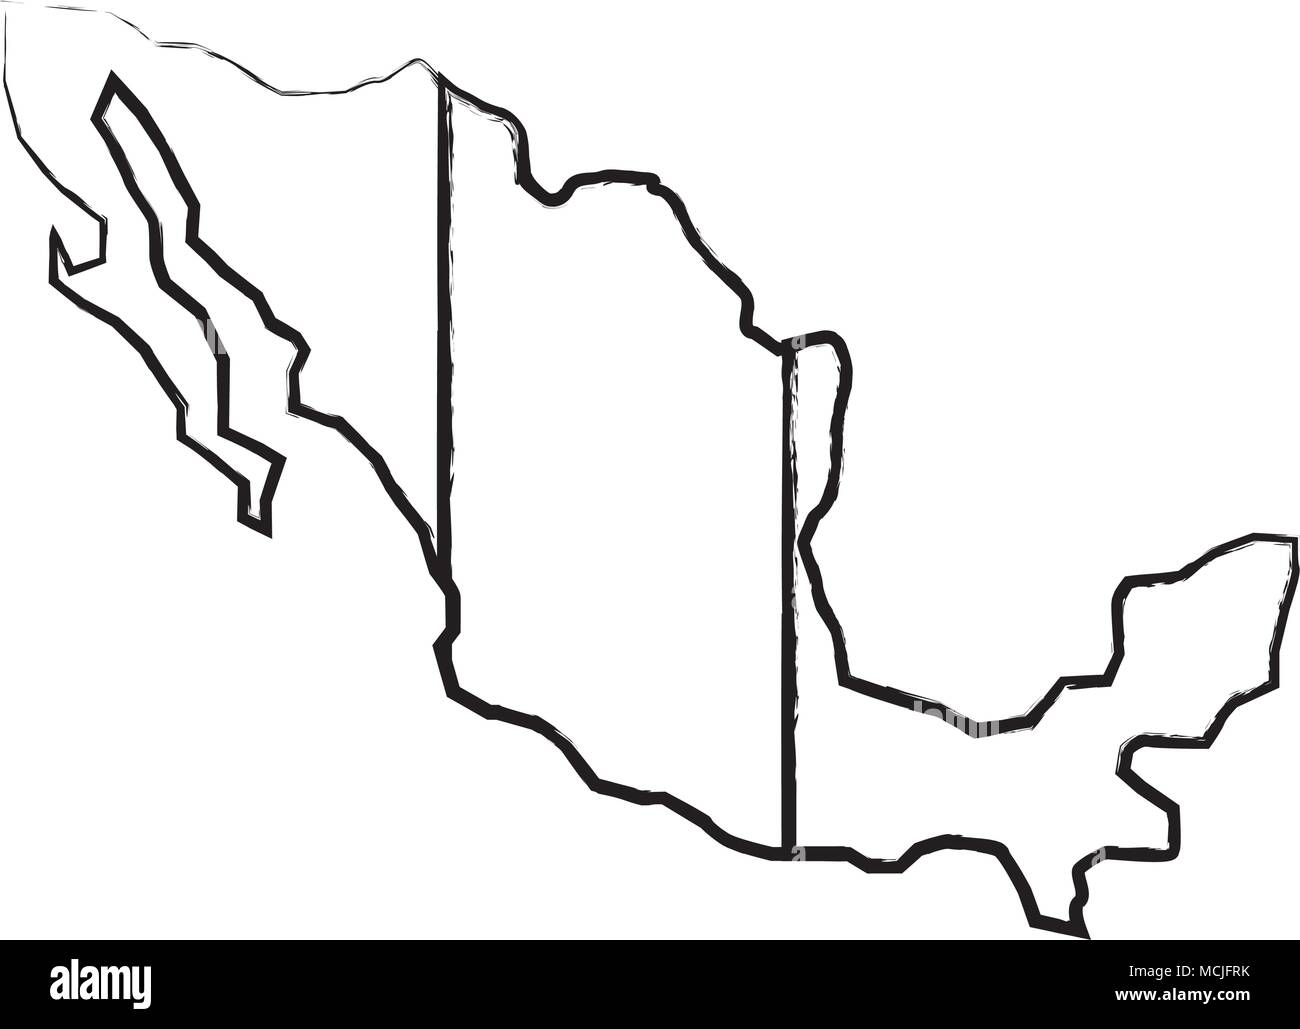 sketch of map of mexico icon over white background, vector illustration - Stock Image